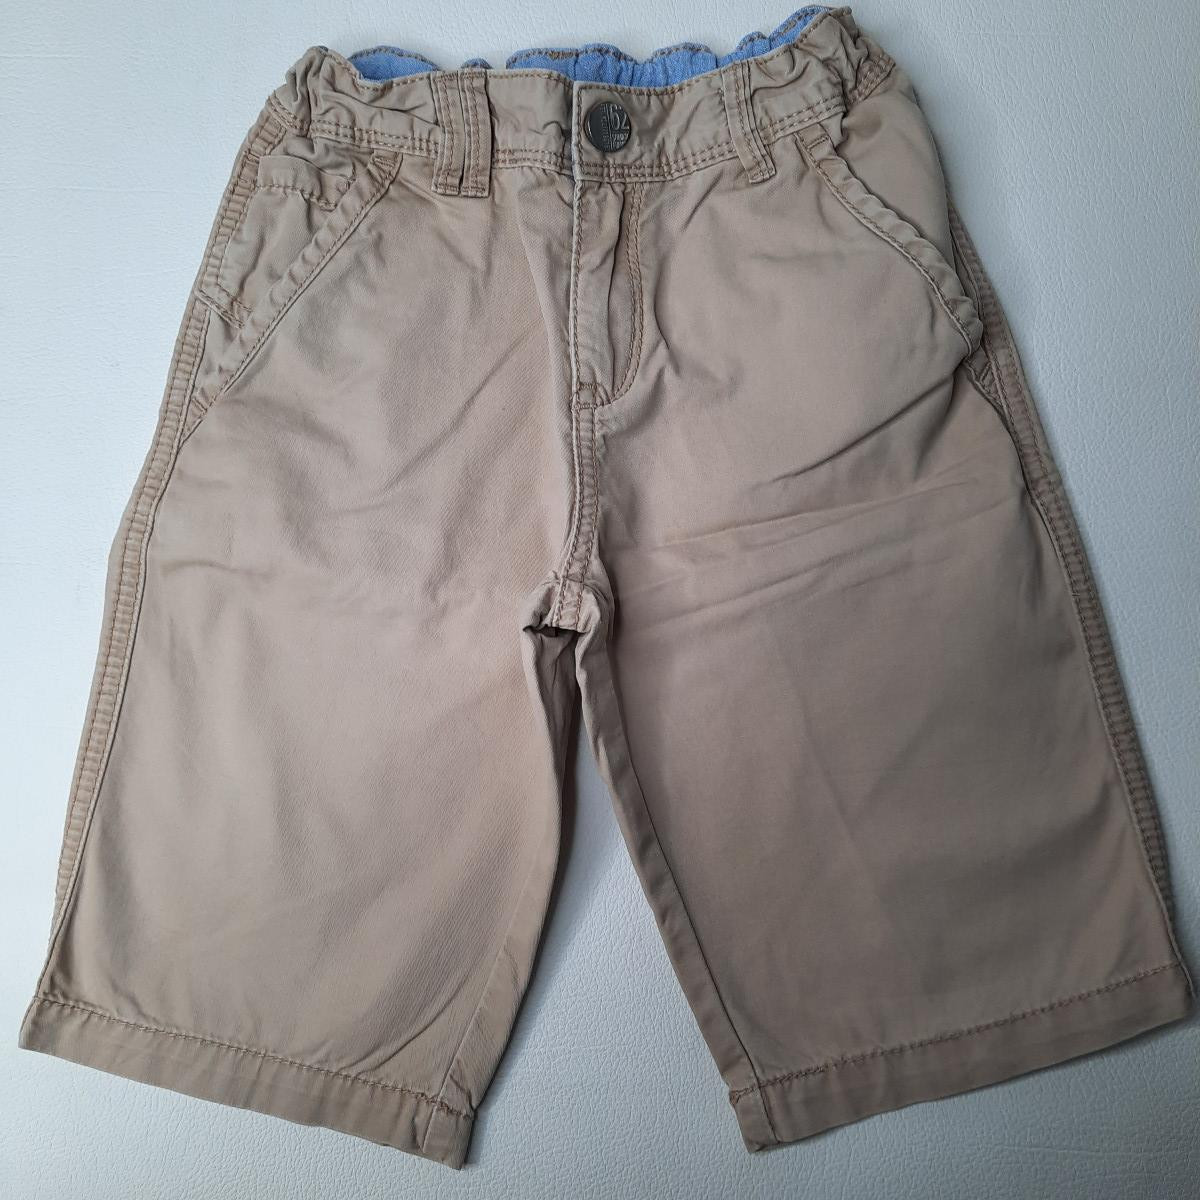 Shorts, Bermudas - photo 7